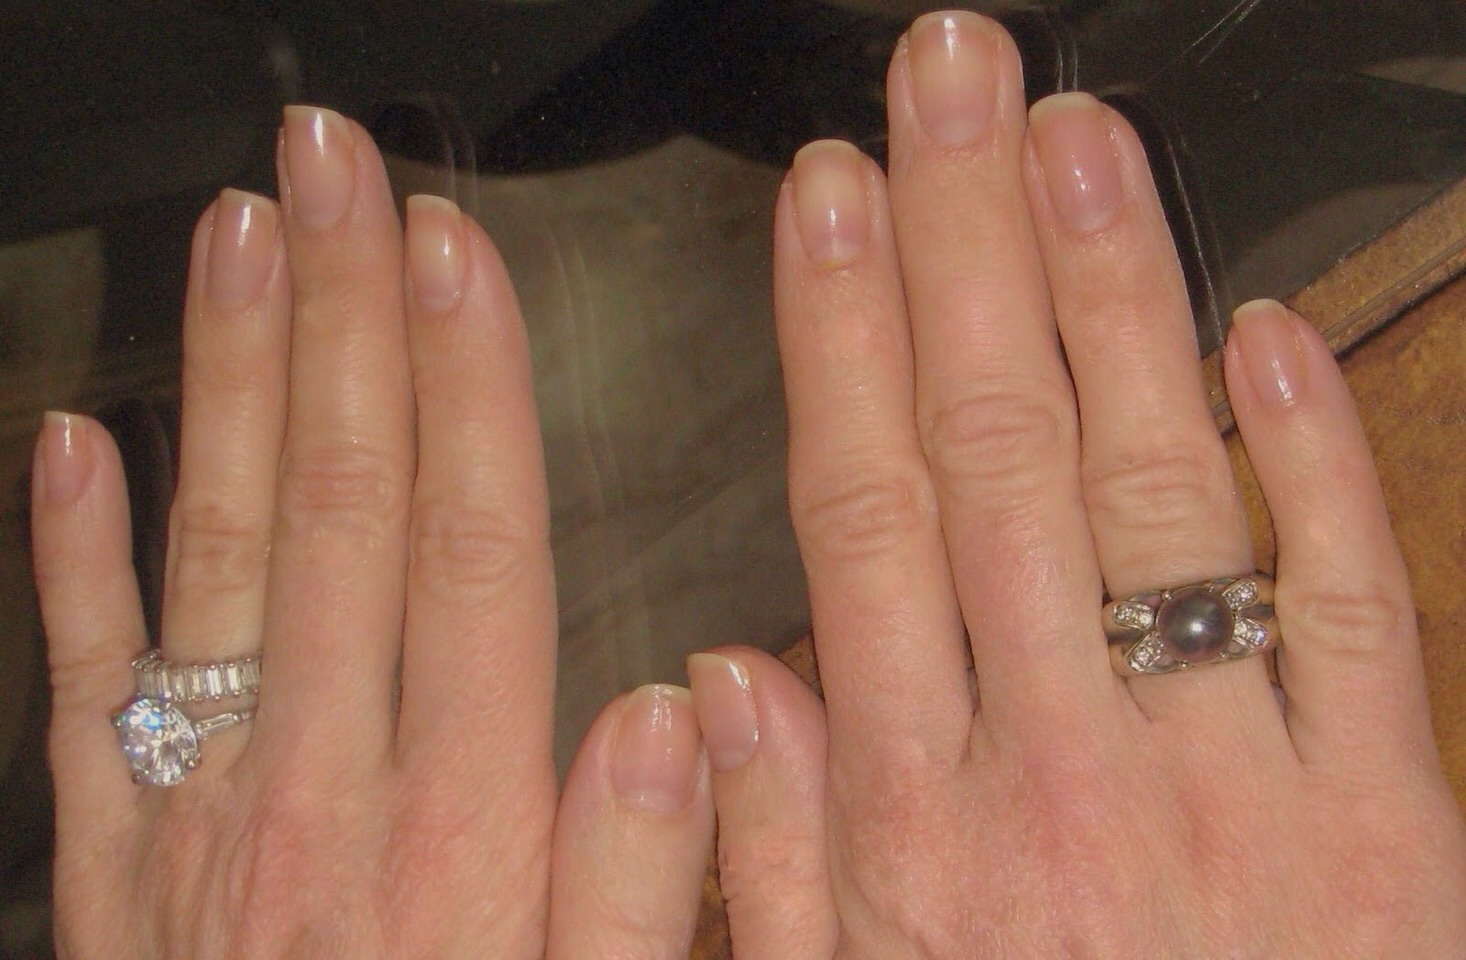 Strong and healthy nails in just two months